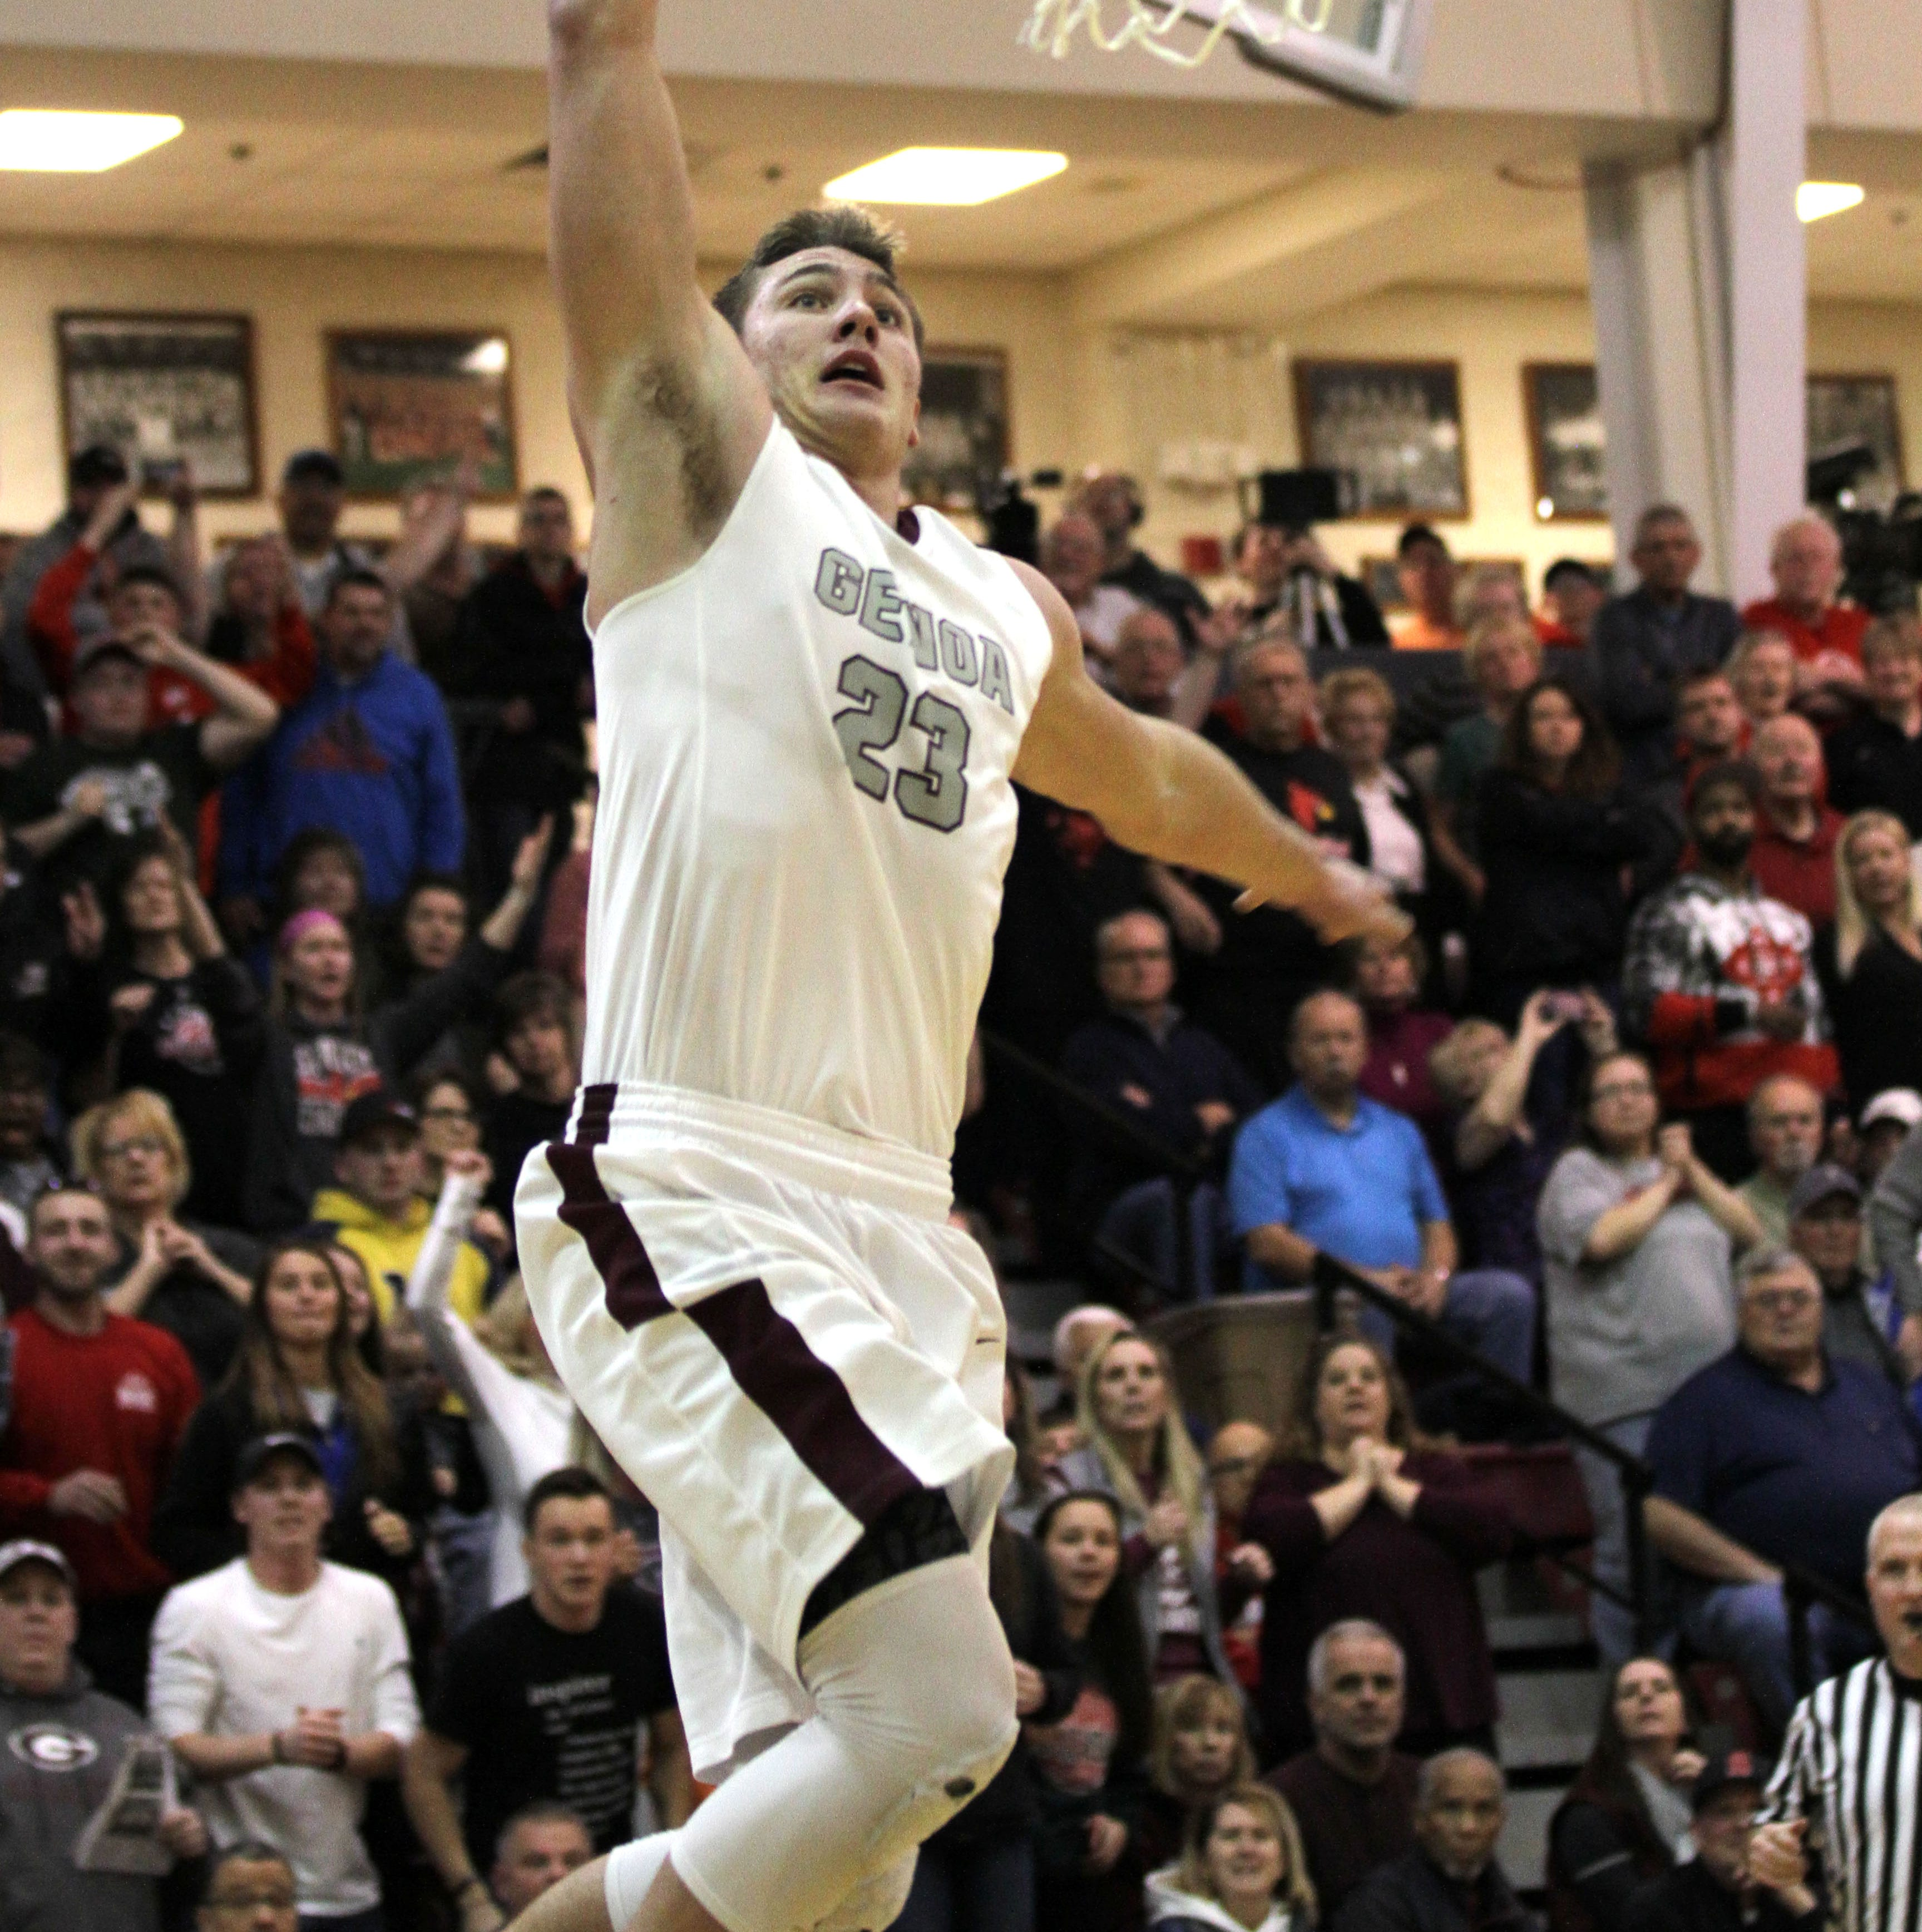 Genoa falls to Cardinal Stritch in double overtime in district final